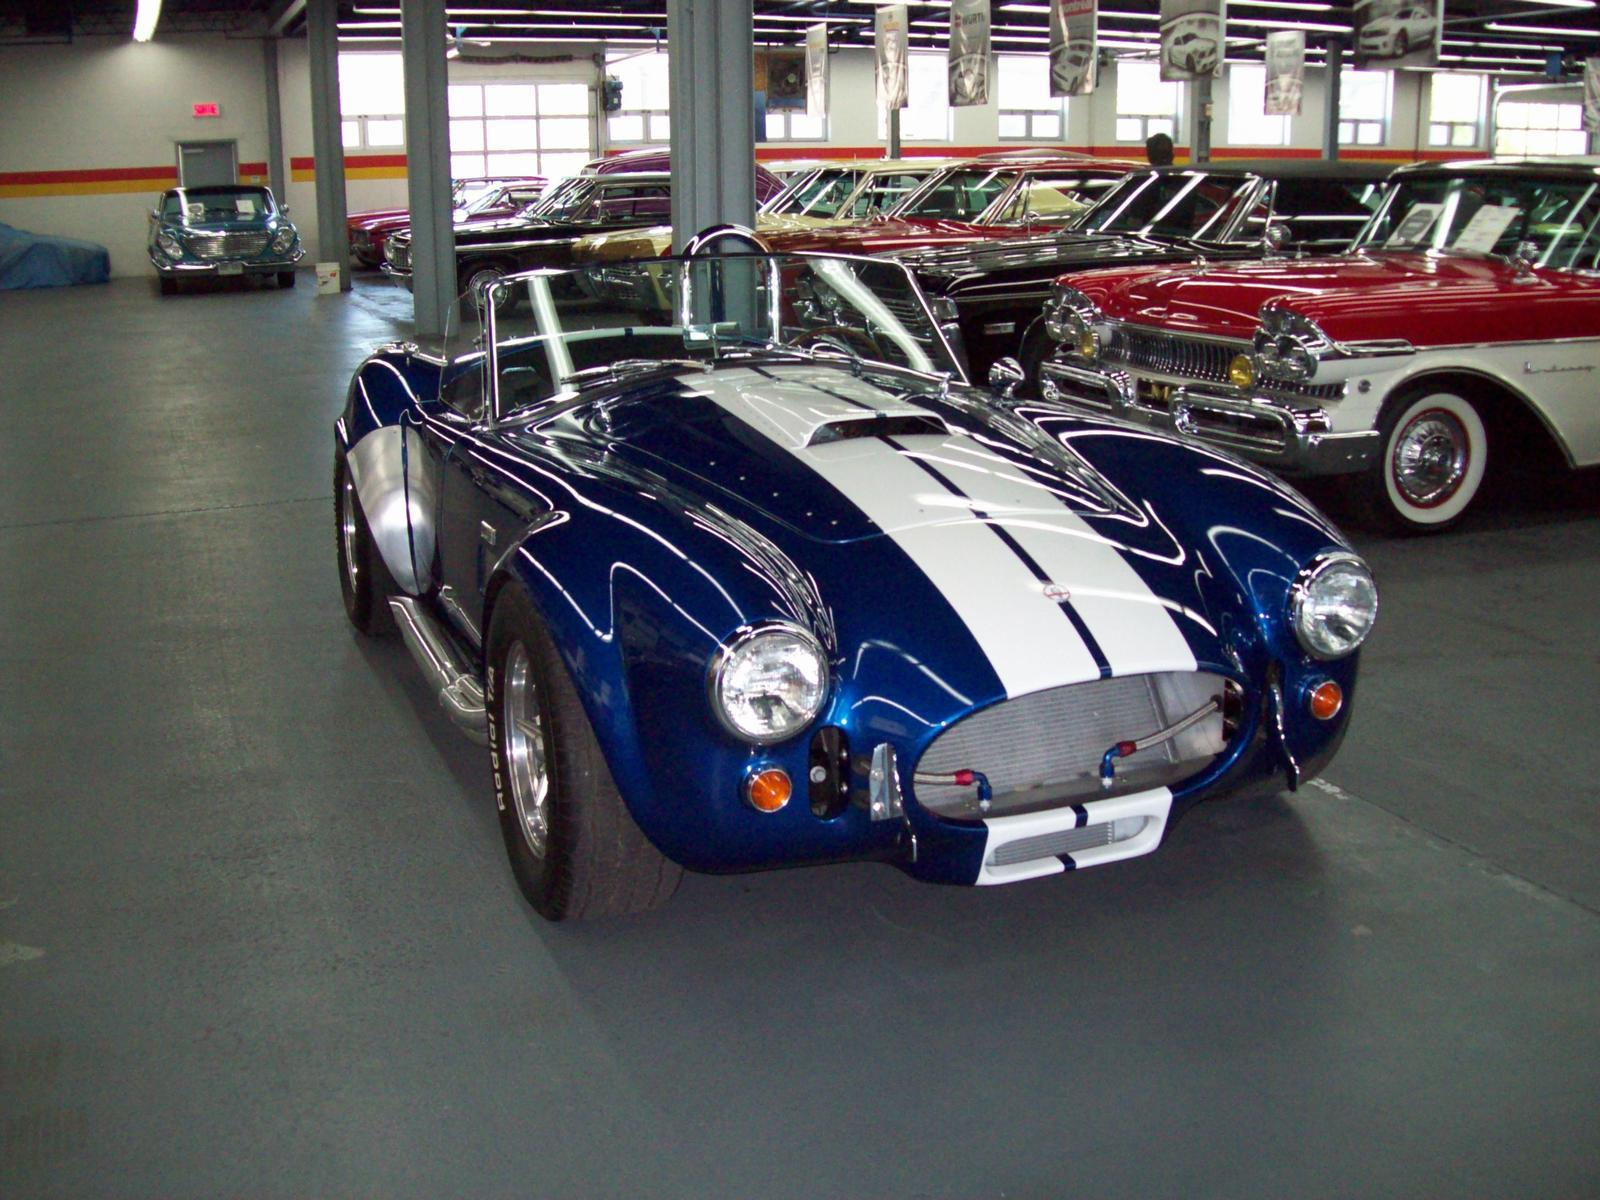 ac cobra replica 1966 usag vendre saint l onard john scotti classic cars h1r 2y7 2070743. Black Bedroom Furniture Sets. Home Design Ideas